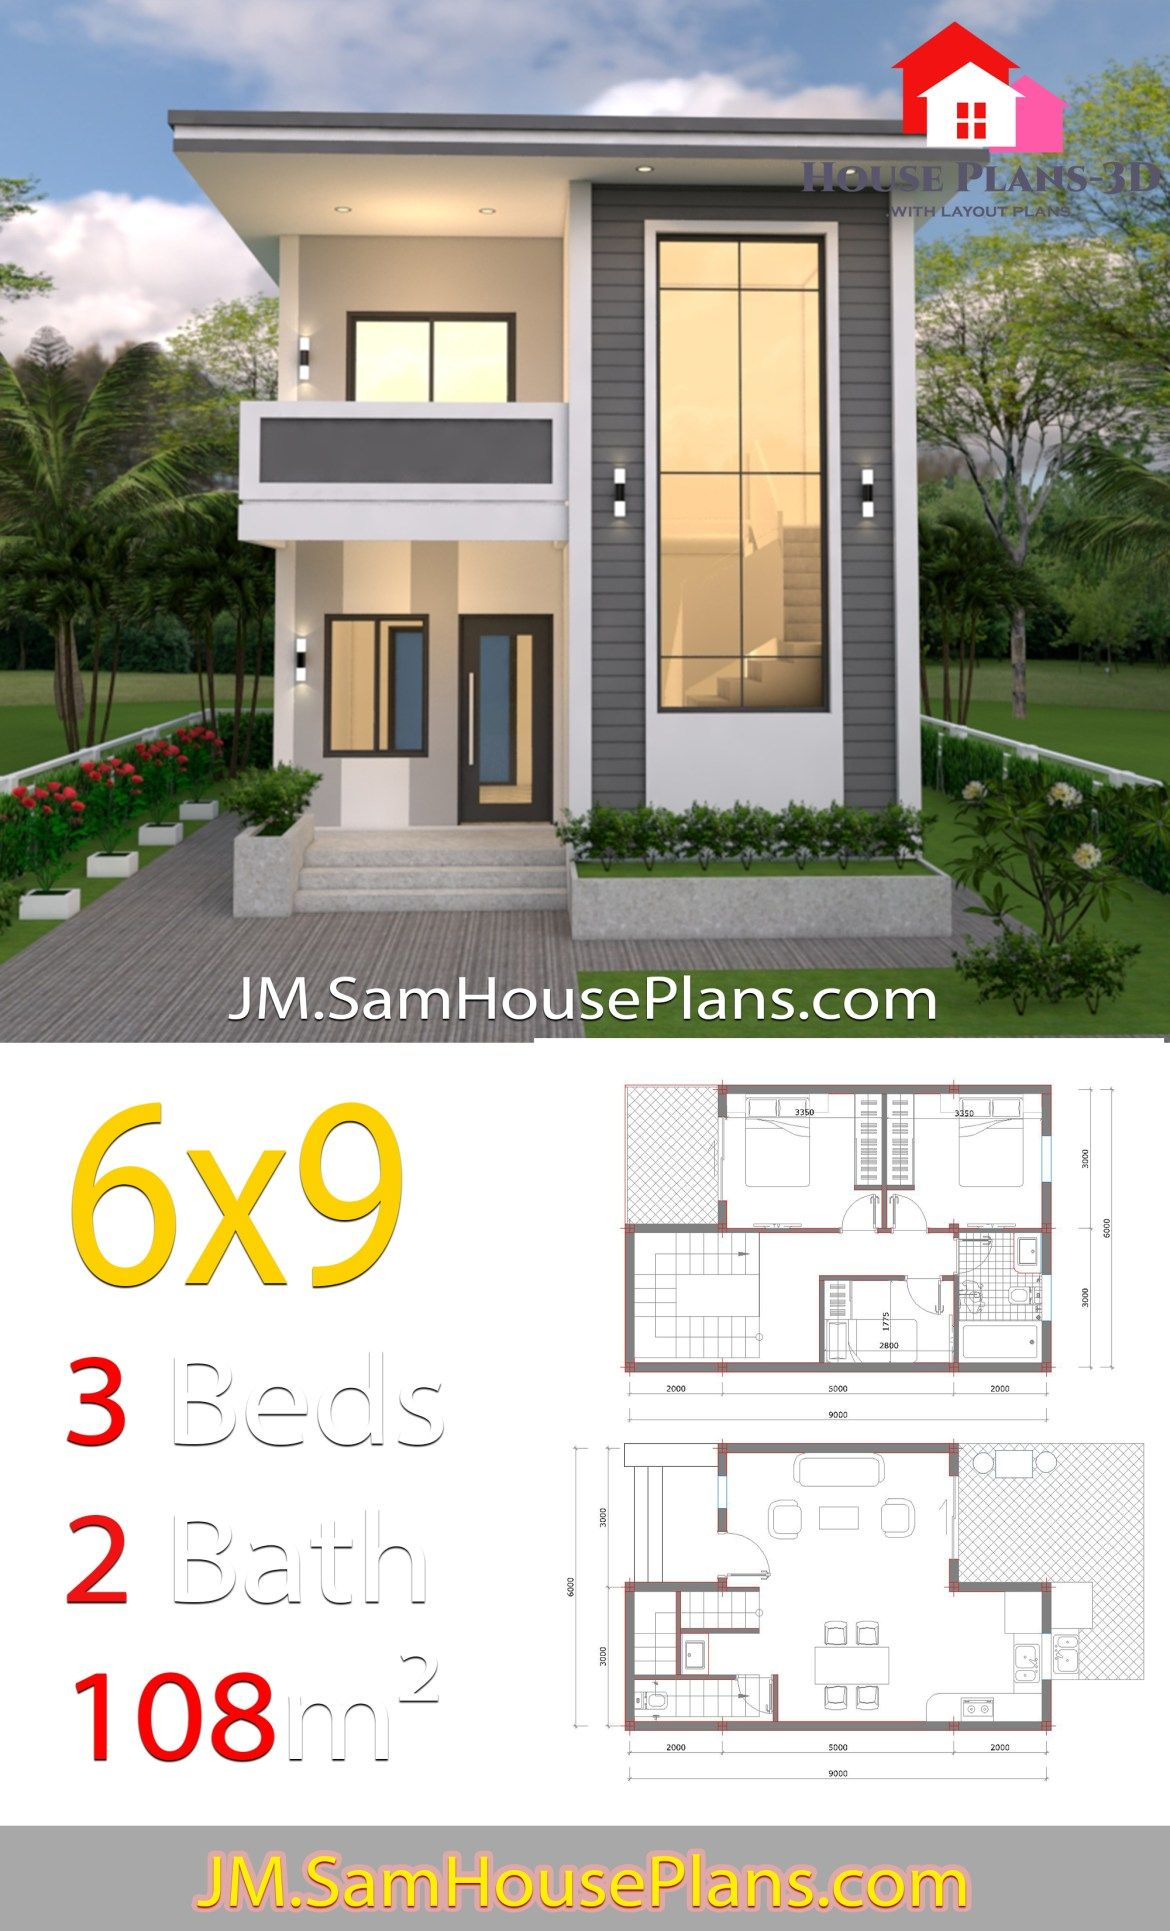 House Design 6x9 With 3 Bedroom Slap Roof House Plans Layout 3d House Plans House Roof House Design